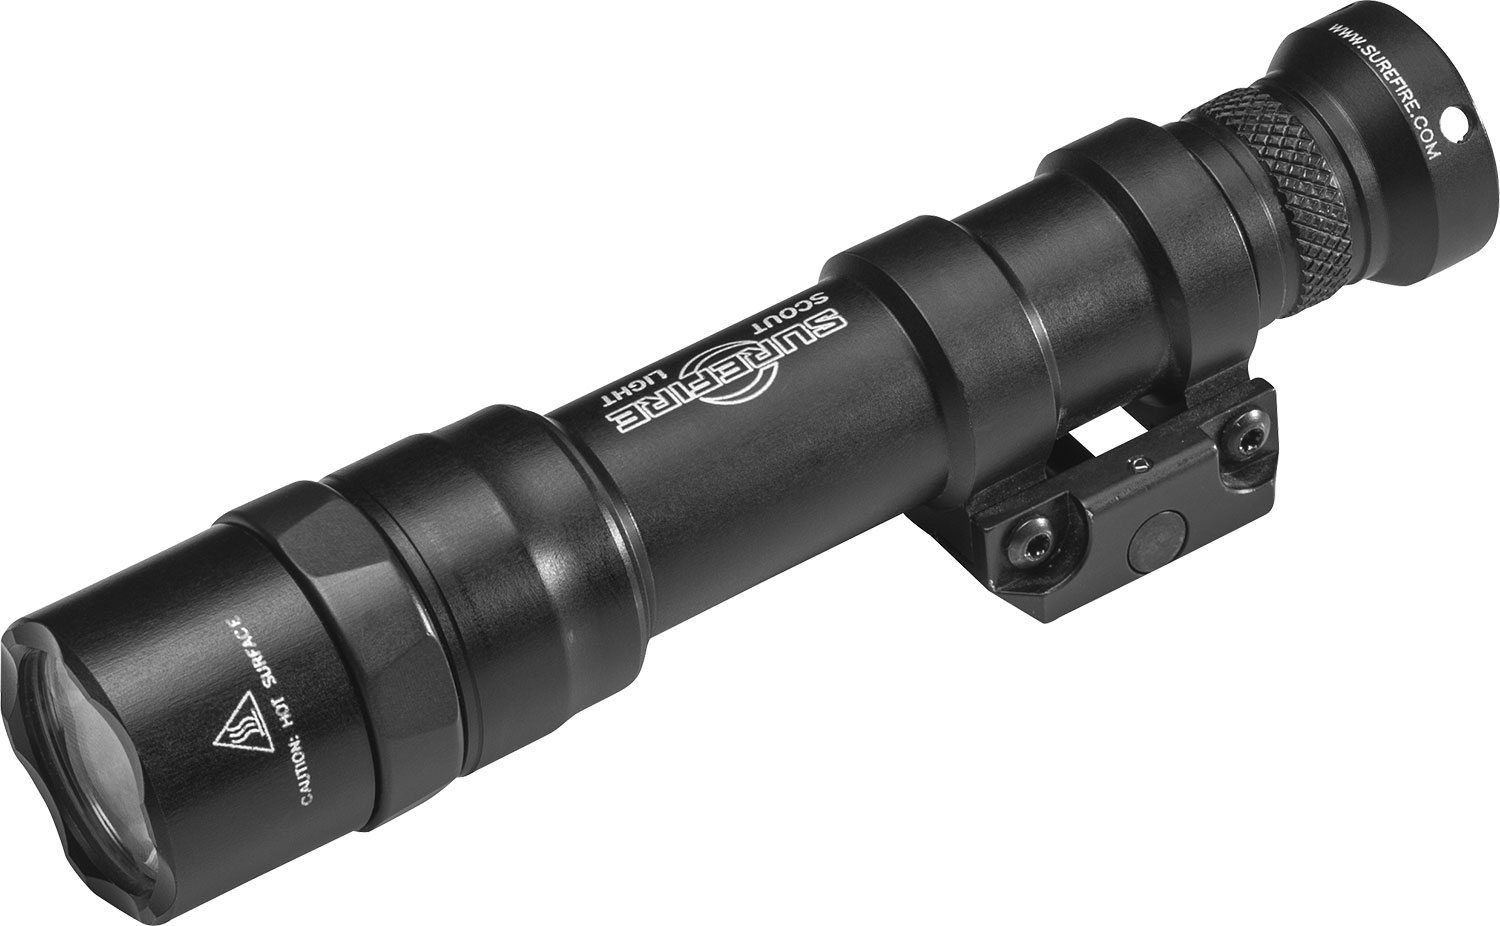 Surefire M600DFBK M600DF Ultra Scout White LED 1500 Lumens Lithium Ion Rechargeable Battery Black Aluminum